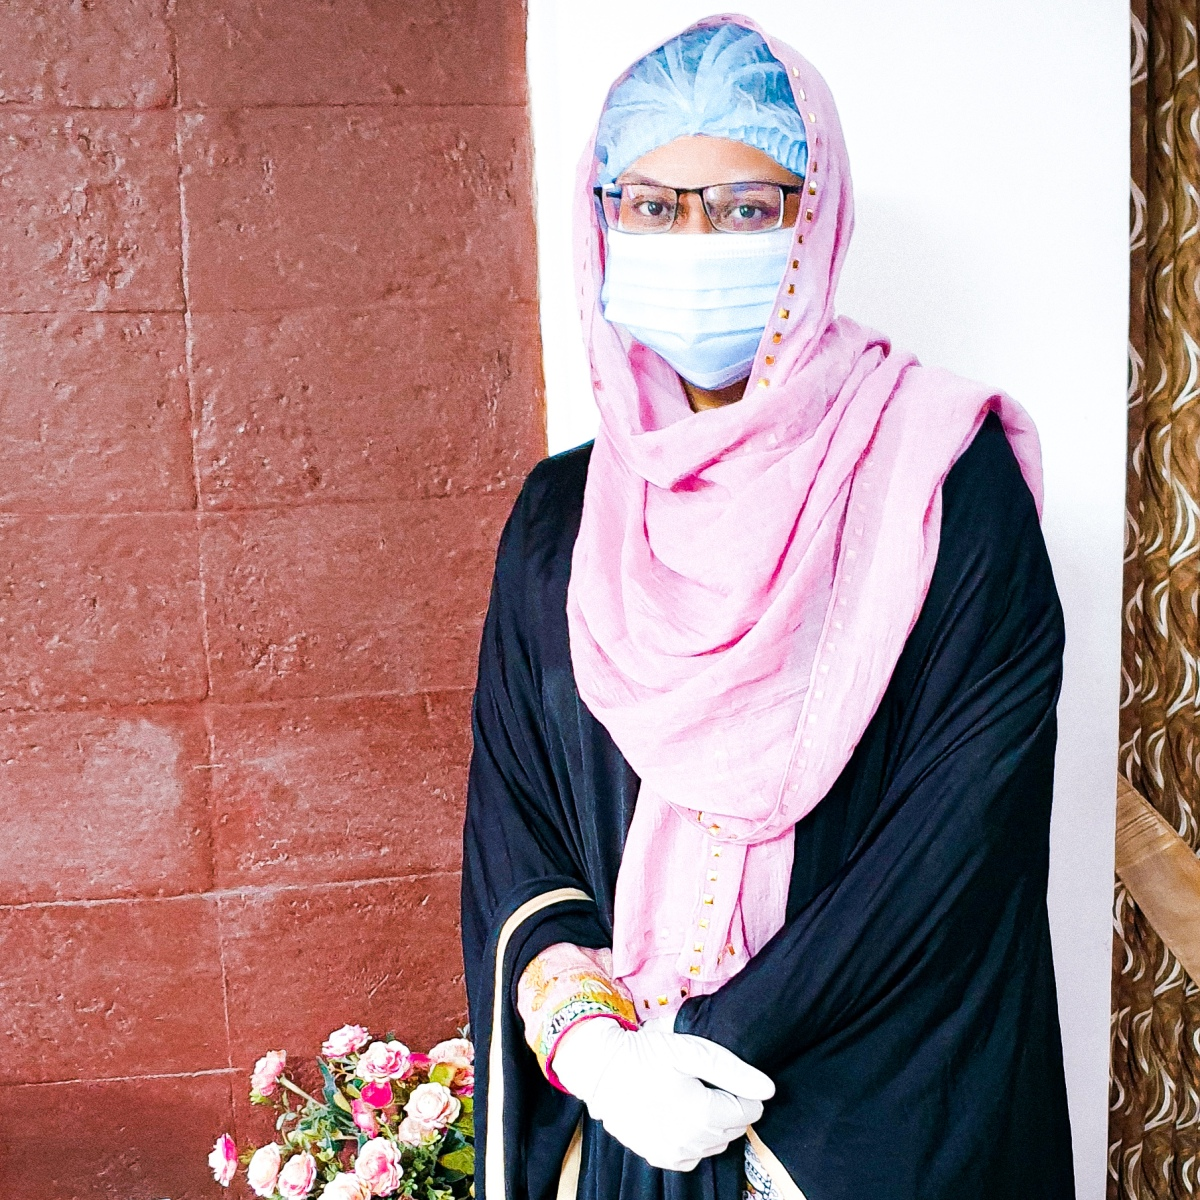 The image of Ava, The Aboltabol Maa, a Bangladeshi writer wearing safety gears because of the pandemic. She is one of the first Bangladeshi mom bloggers, a Bangladesh based parenting blogger, living in Dhaka.